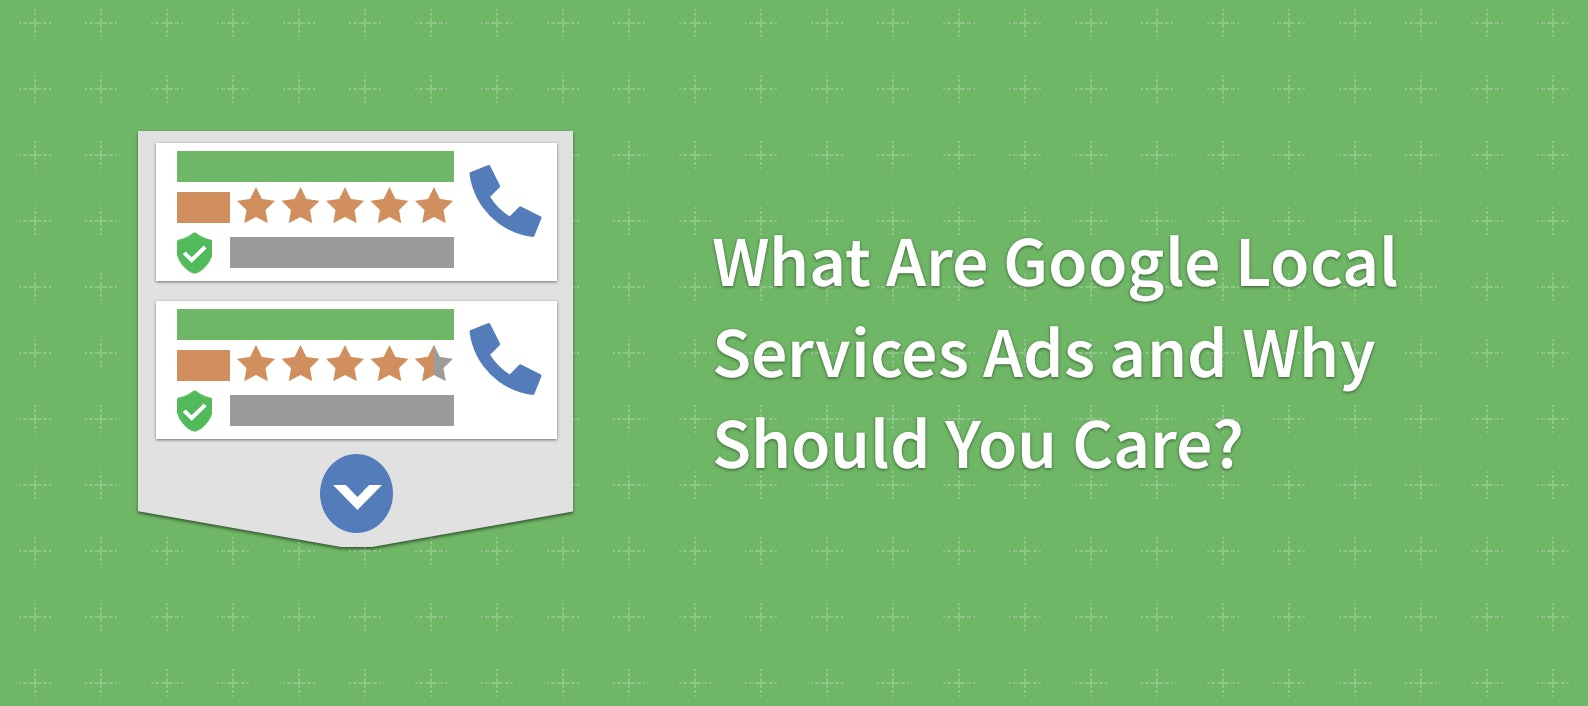 What Are Google Local Services Ads and Why Should You Care?